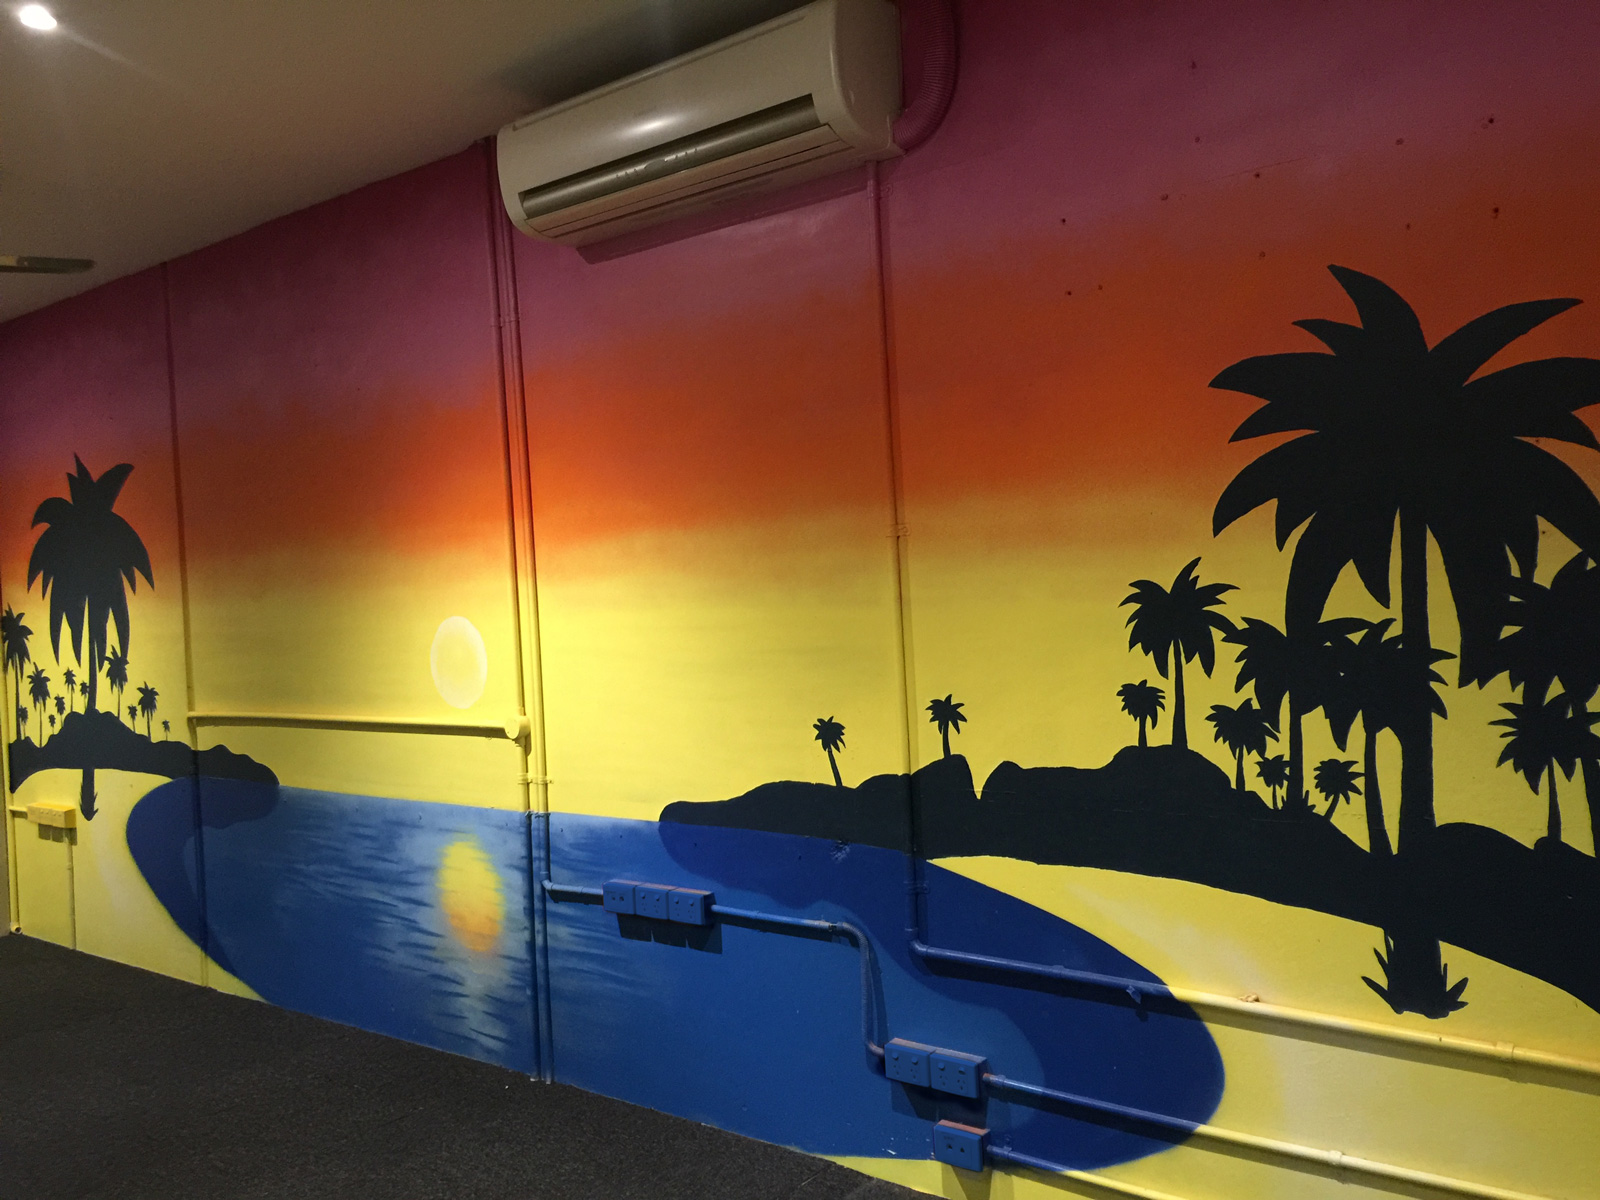 Sunset-beach-mural-in-office-space-melbourne.jpg